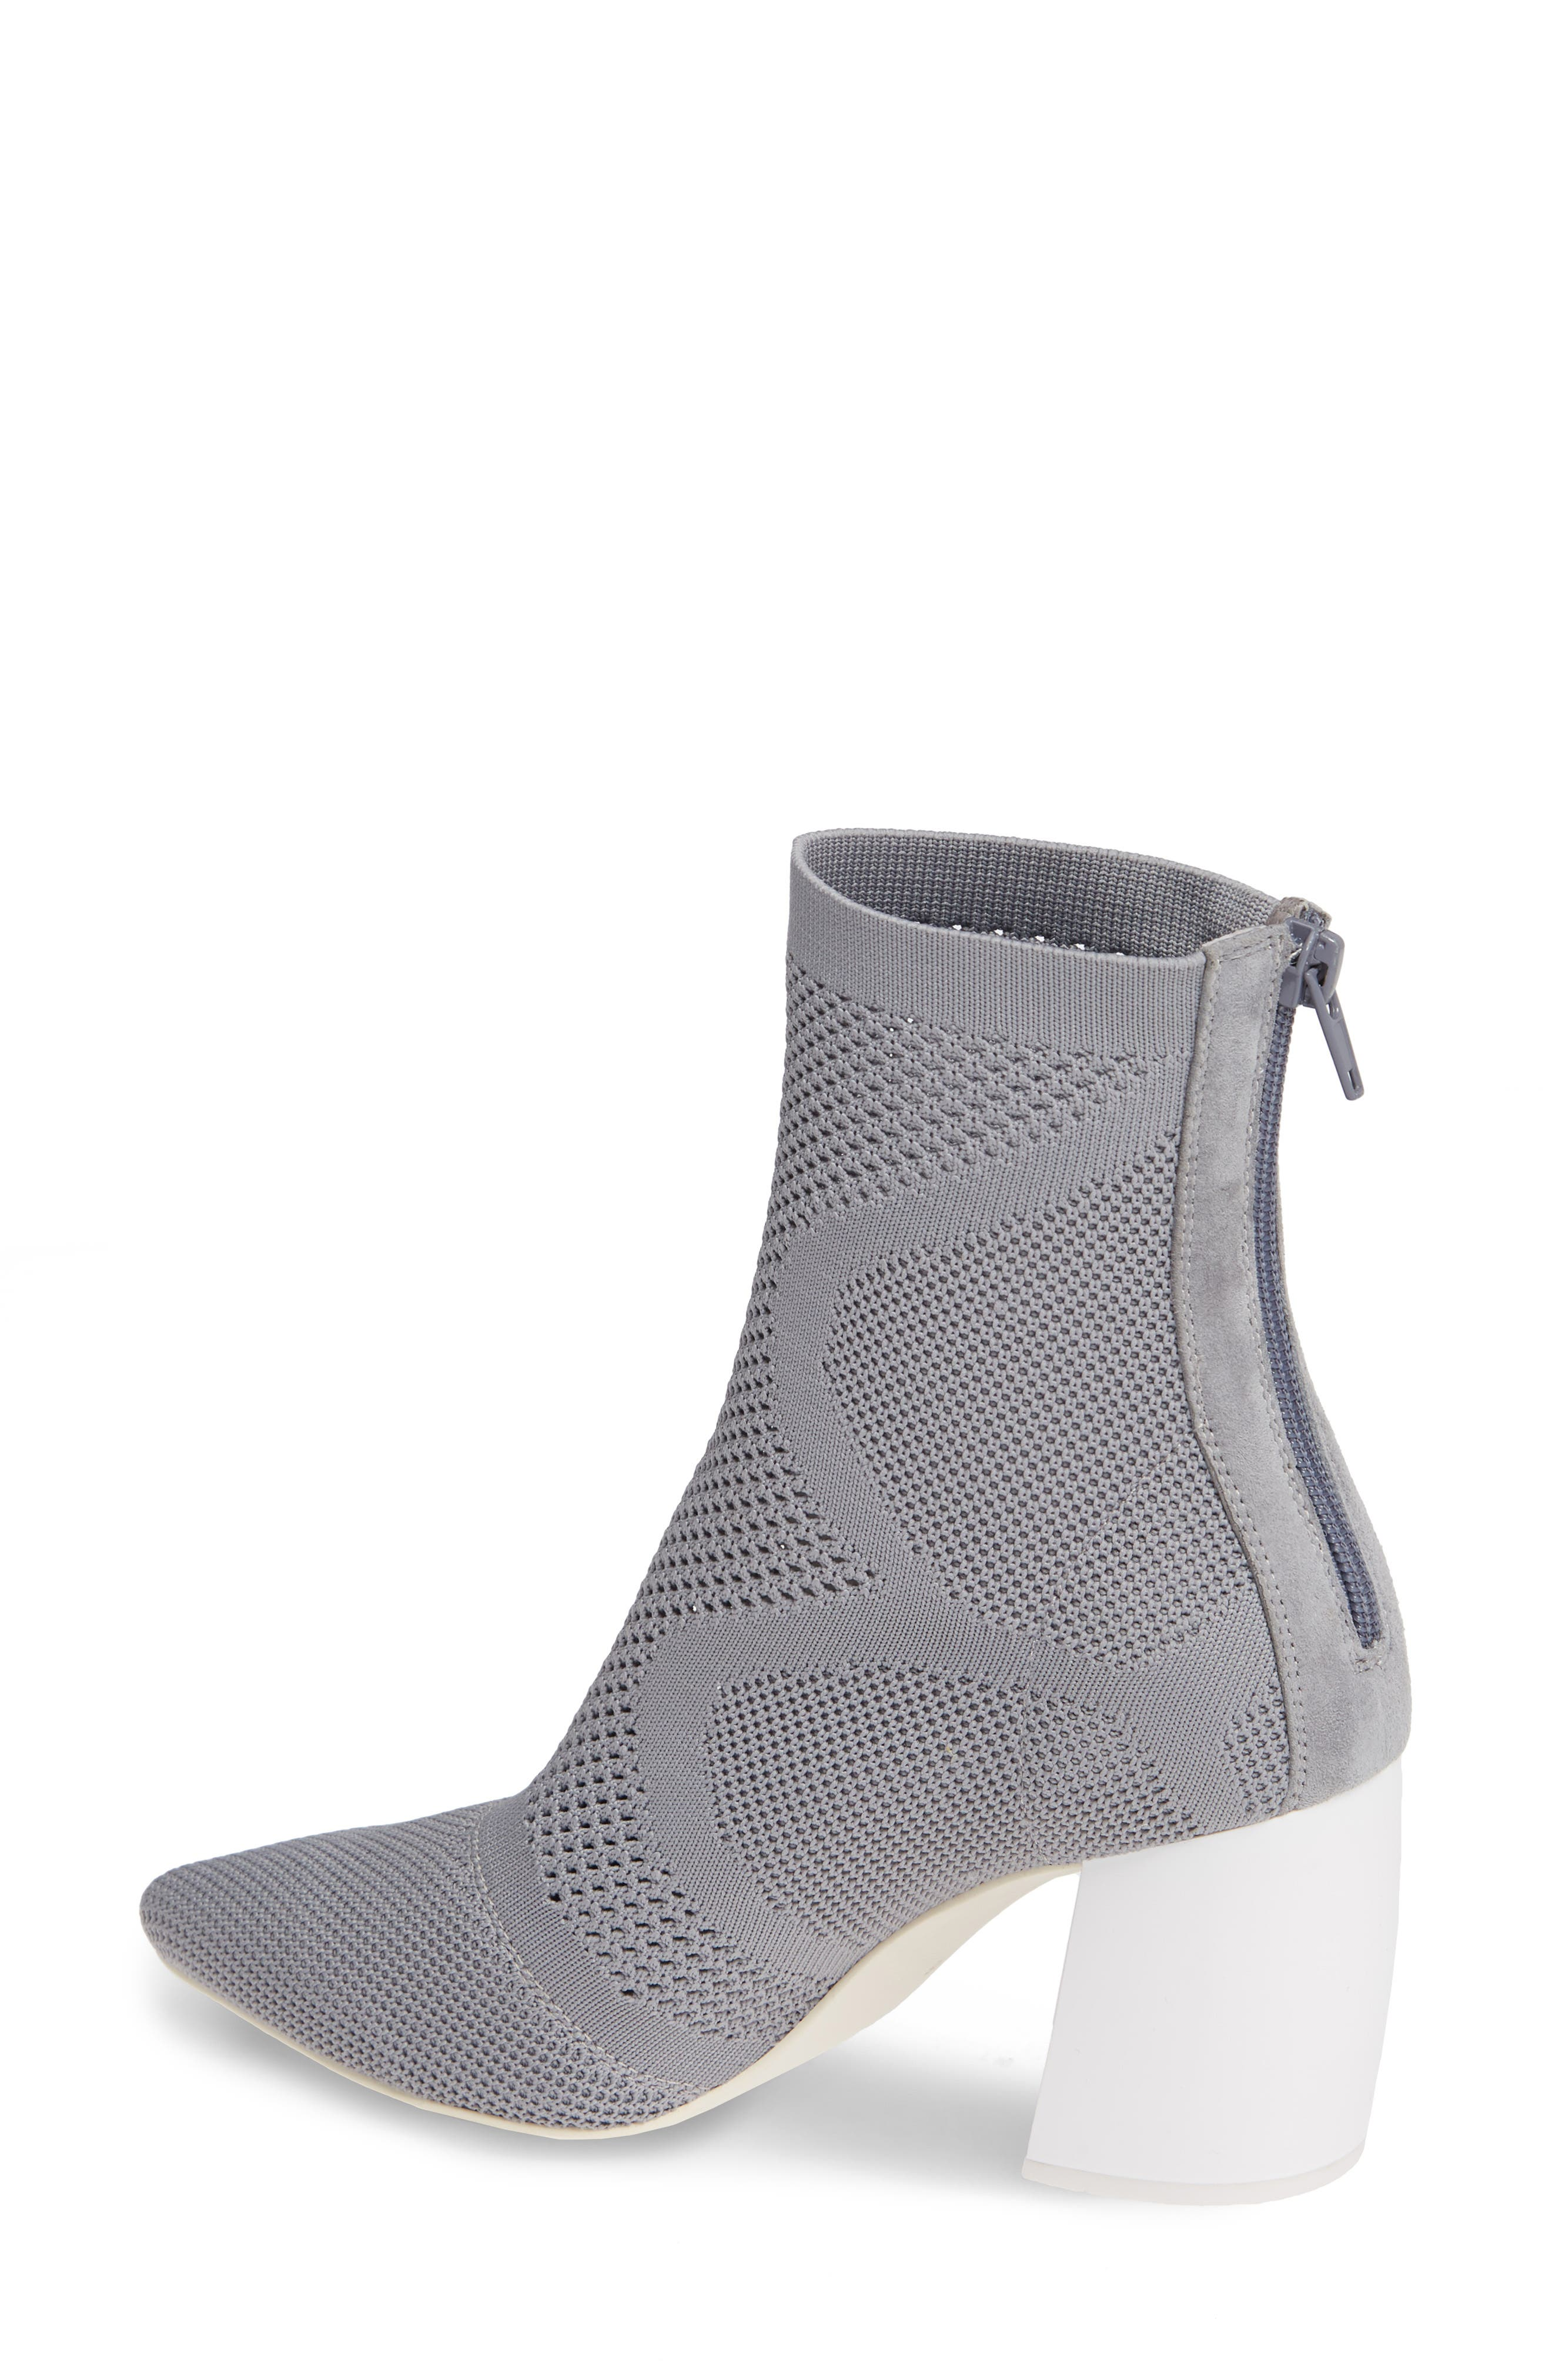 Final Bootie,                             Alternate thumbnail 2, color,                             GREY WHITE